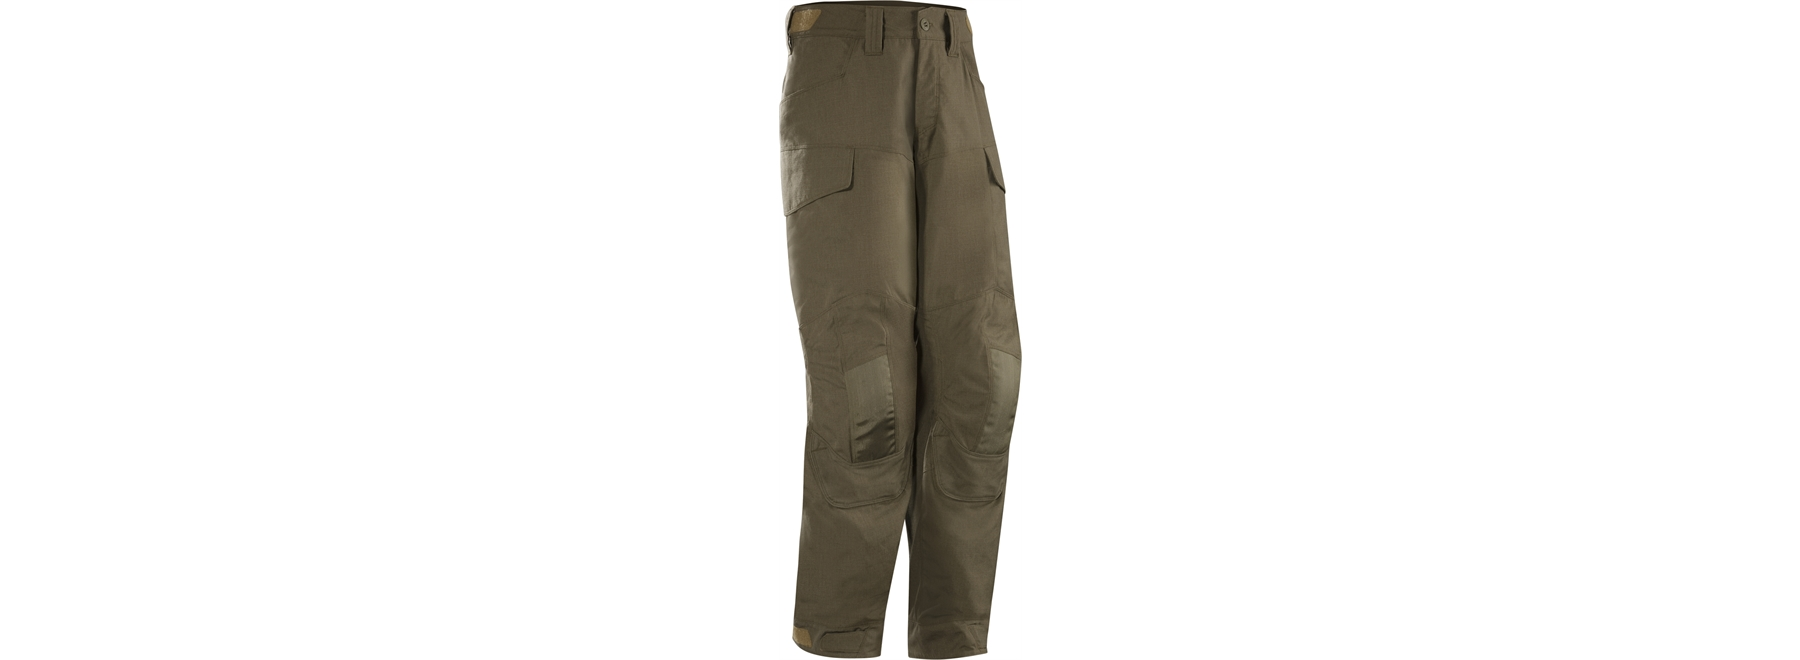 Assault AR Pant Ranger Green